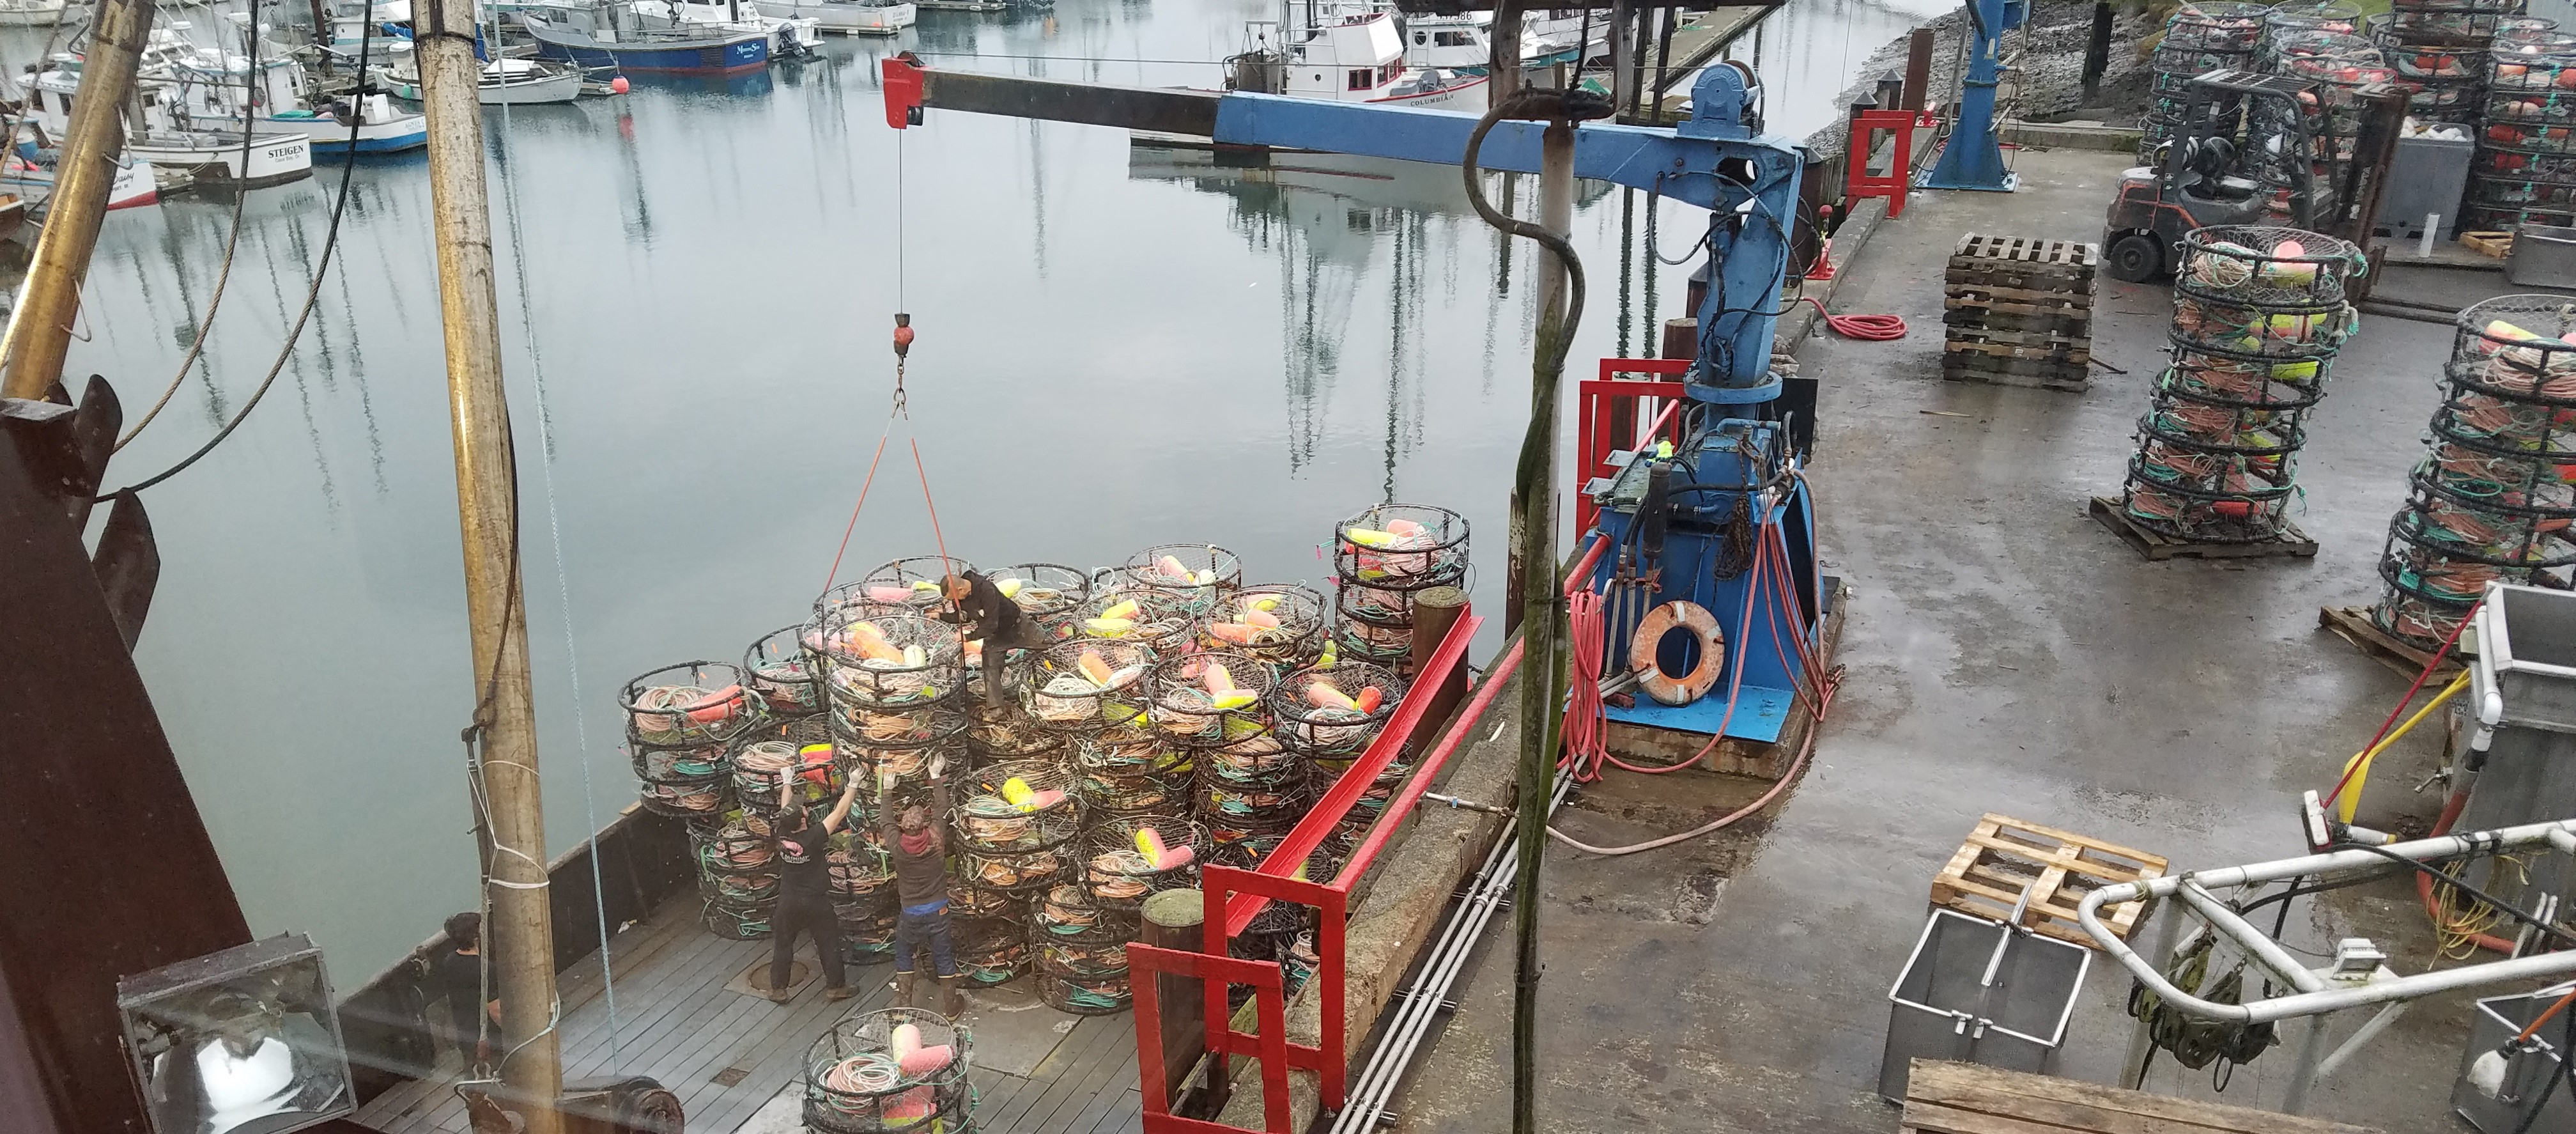 Dungeness Crab for Christmas? Ask the Whales to Leave